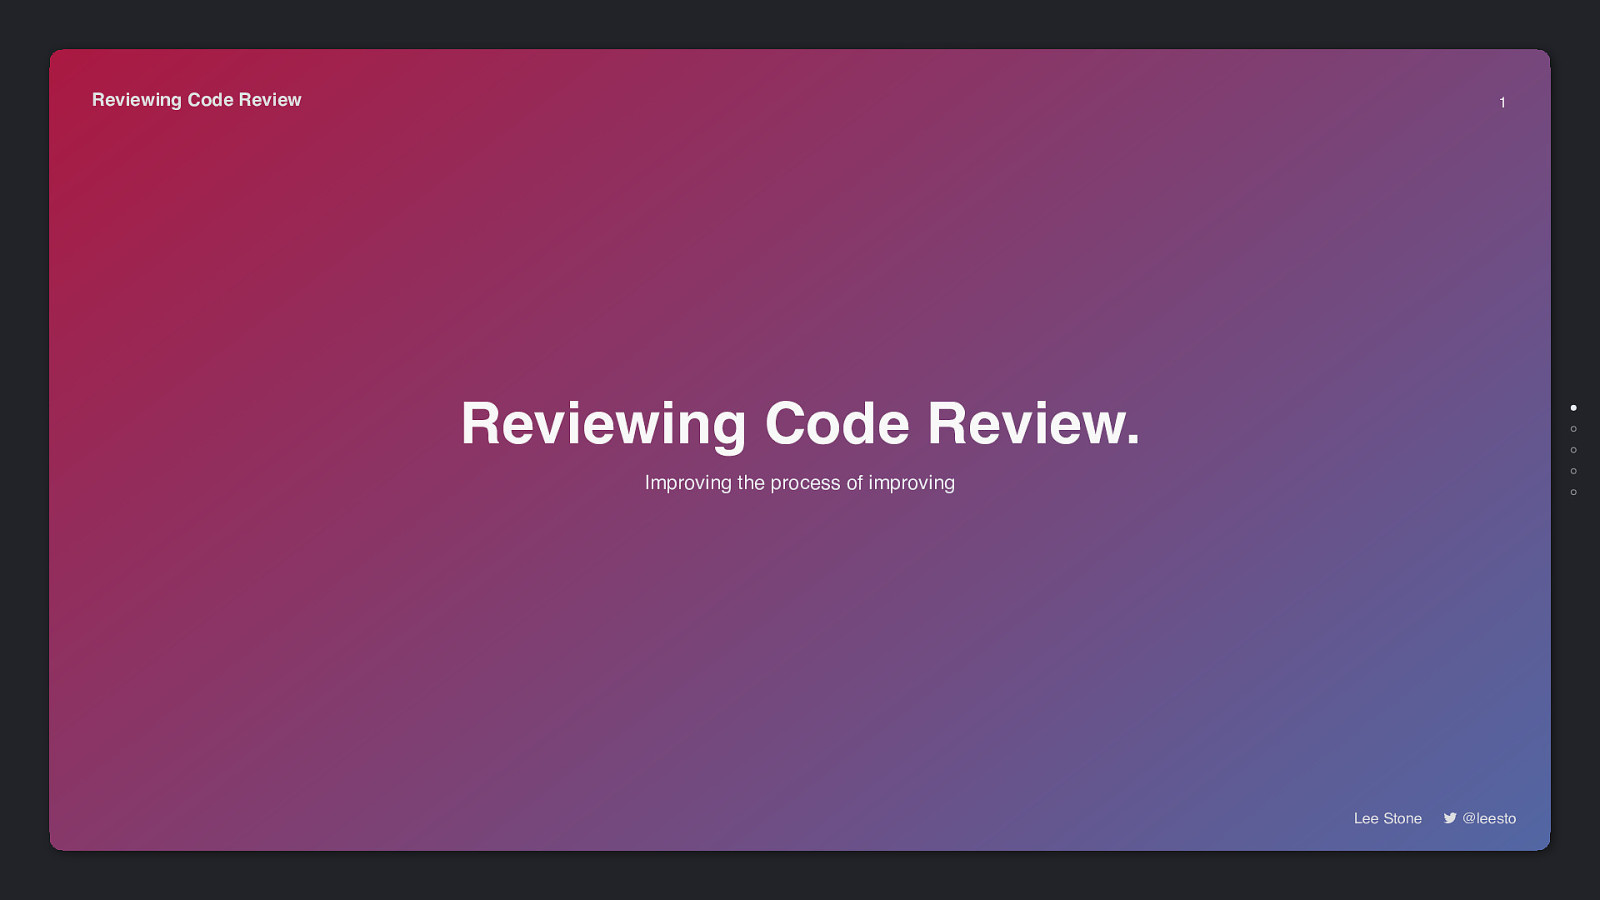 Reviewing Code Reviews